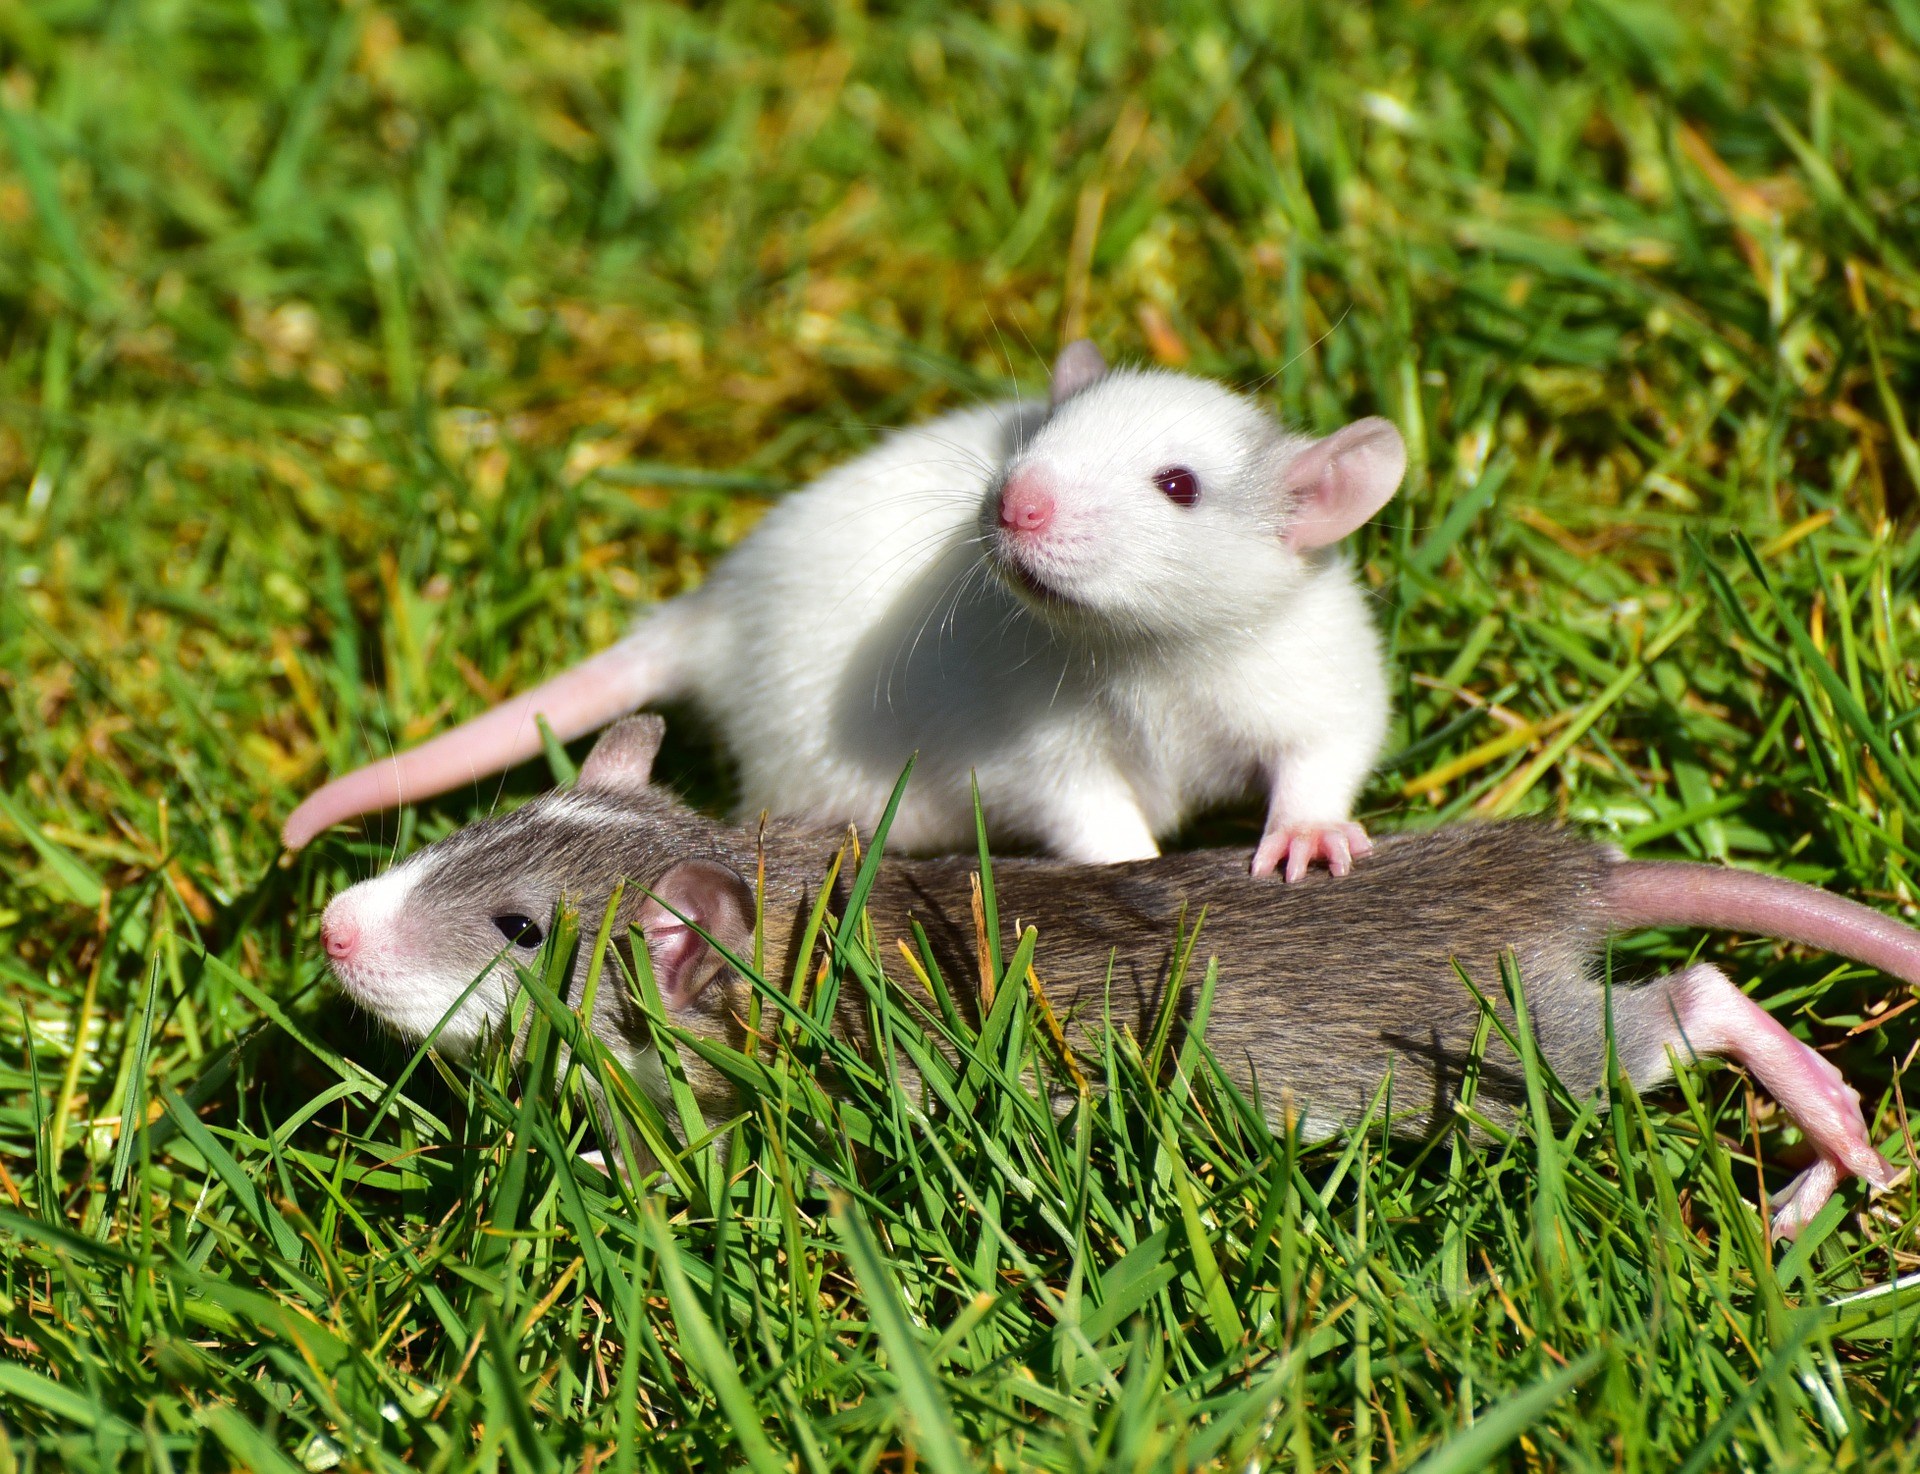 How to Identify & Prevent Rat/Mouse Infestations | 24|7 Home Rescue